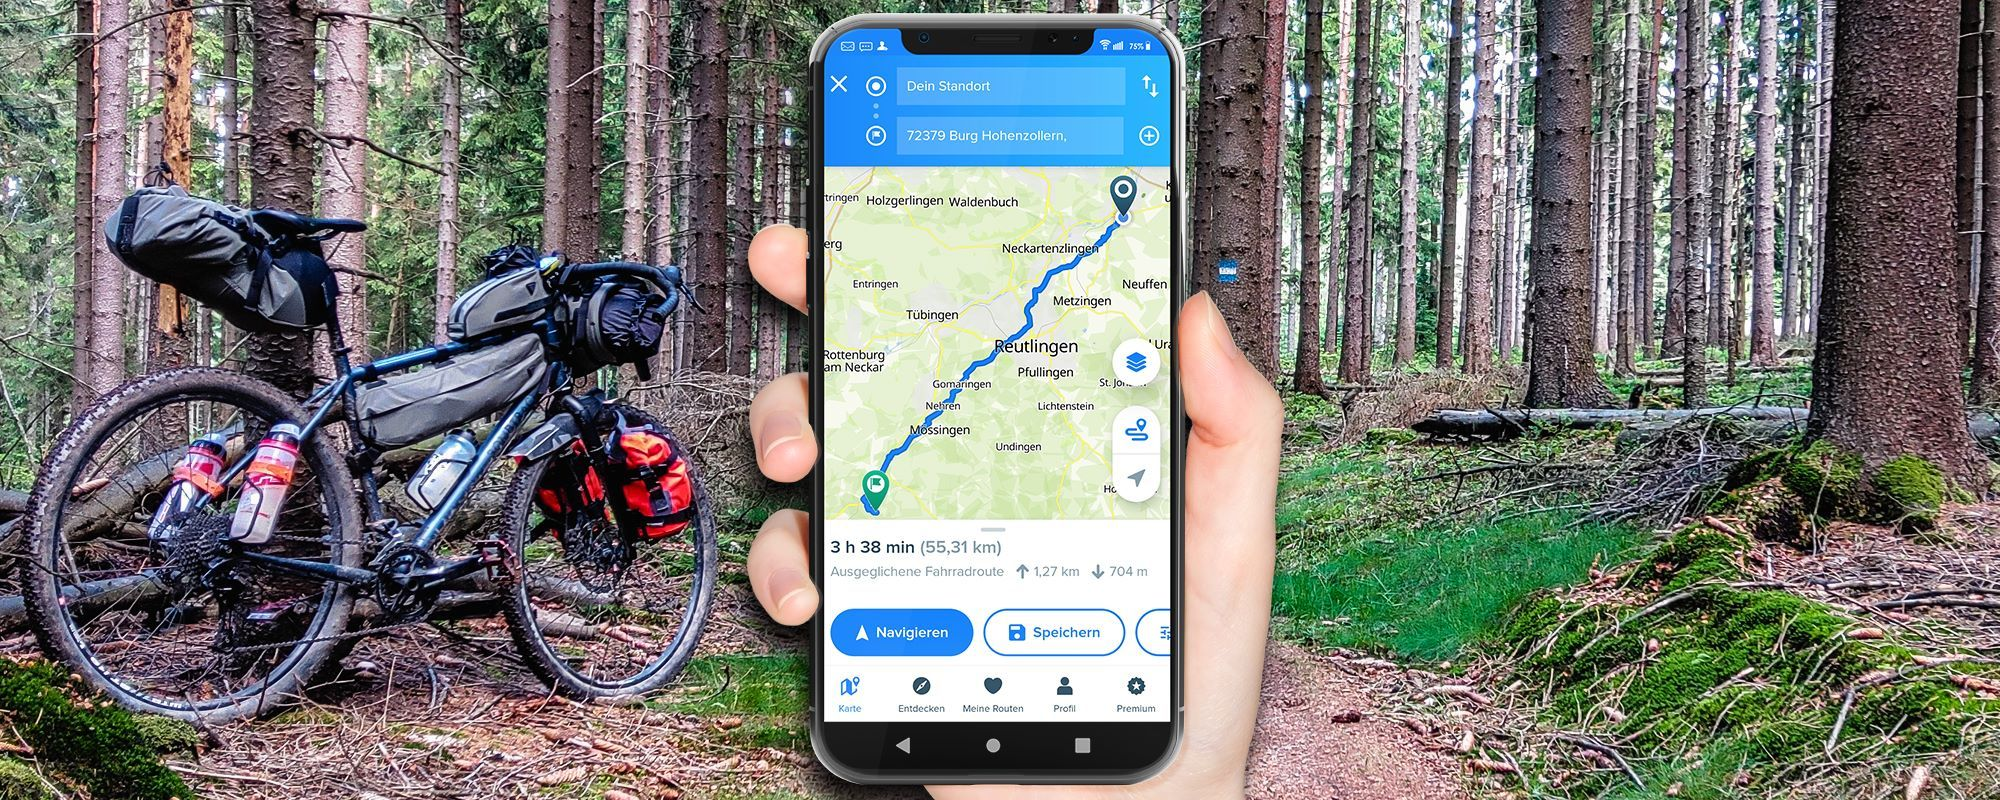 Bikemap experiences - Bike navi app in test: create route & navigate on iPhone, Android and on the web